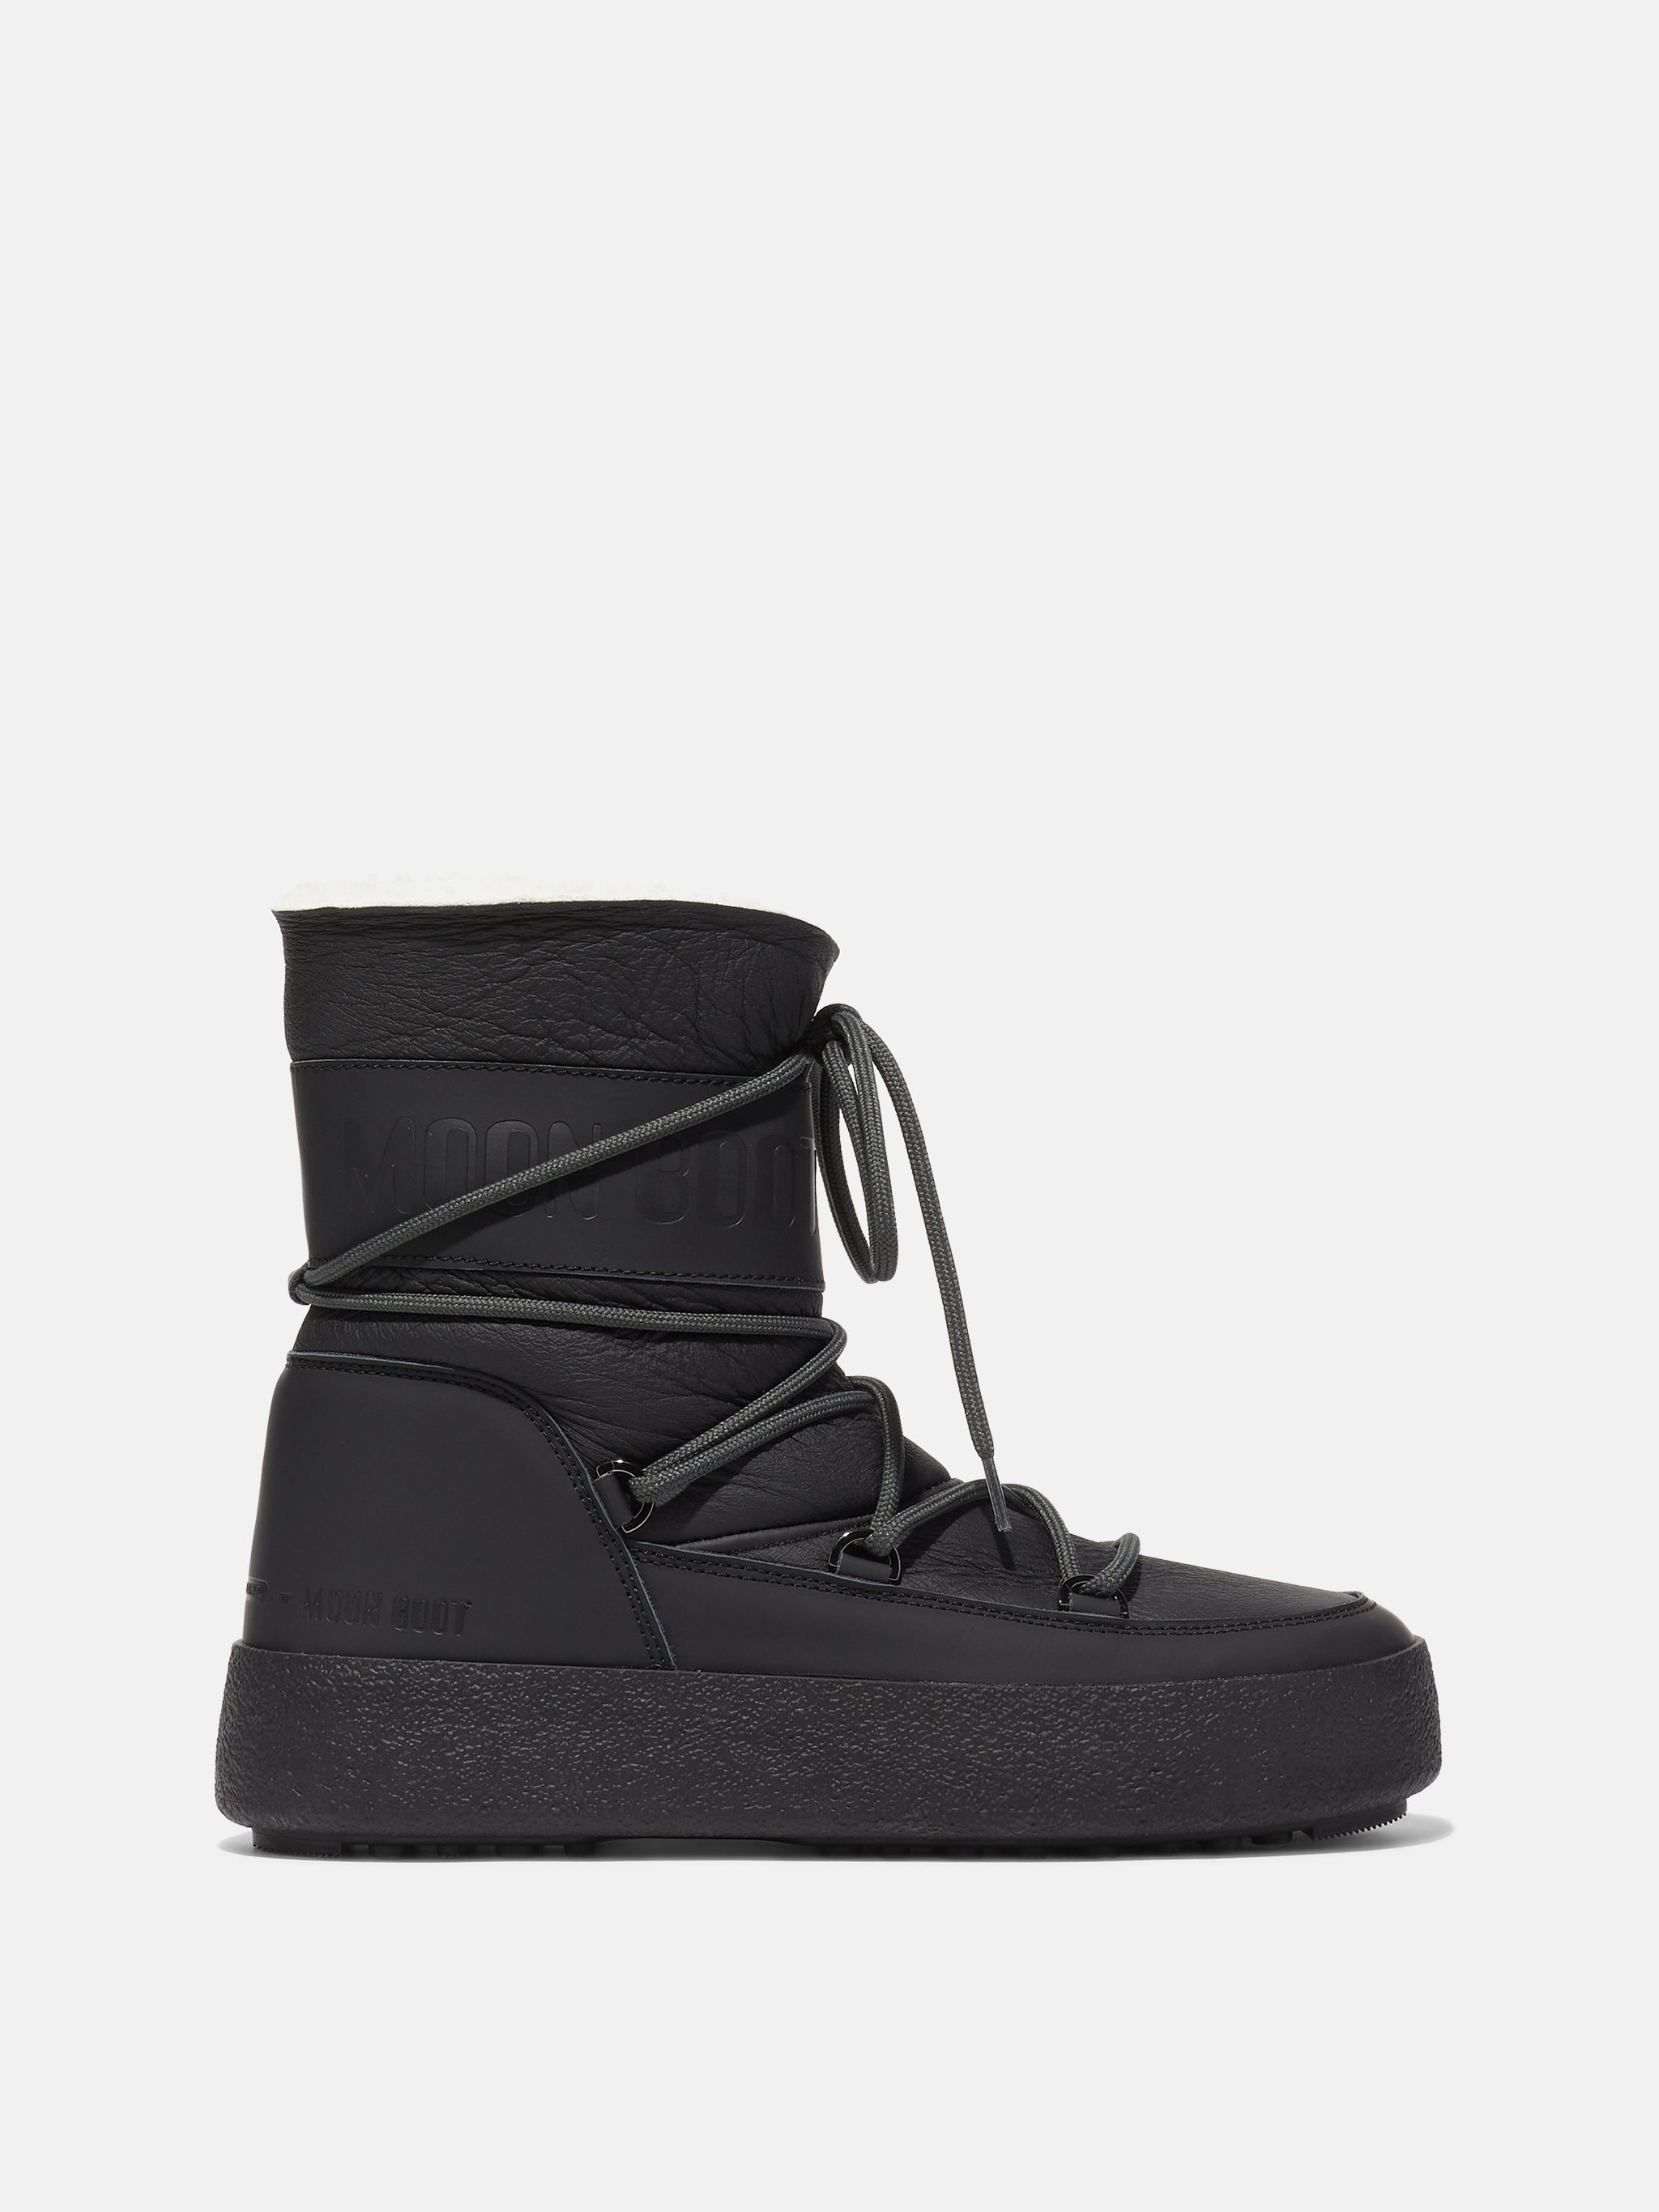 MTRACK TUBE BLACK SHEARLING BOOTS